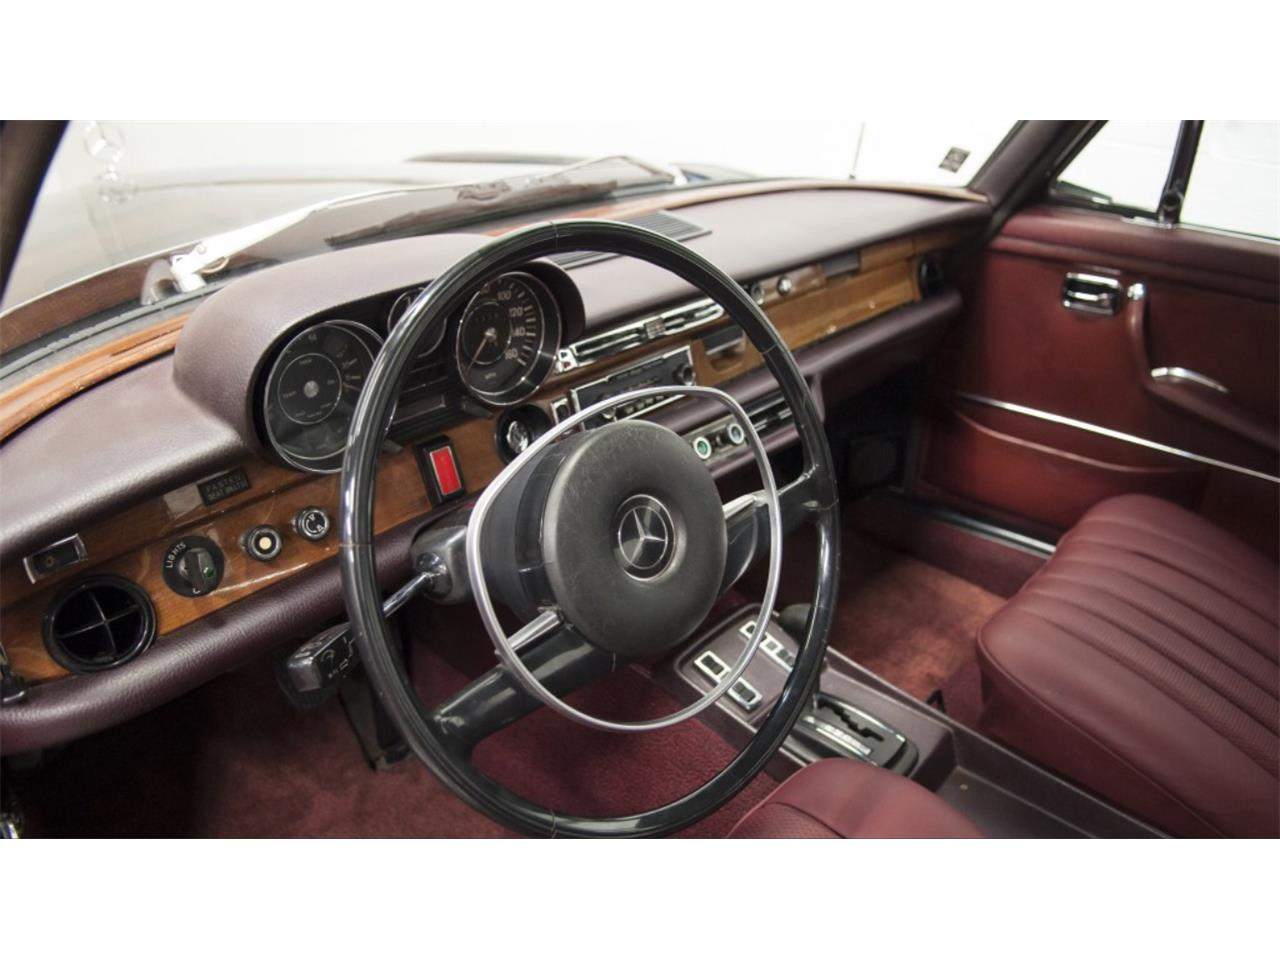 hight resolution of  1972 mercedes benz 280sel for sale cliccars com cc 1155551 on